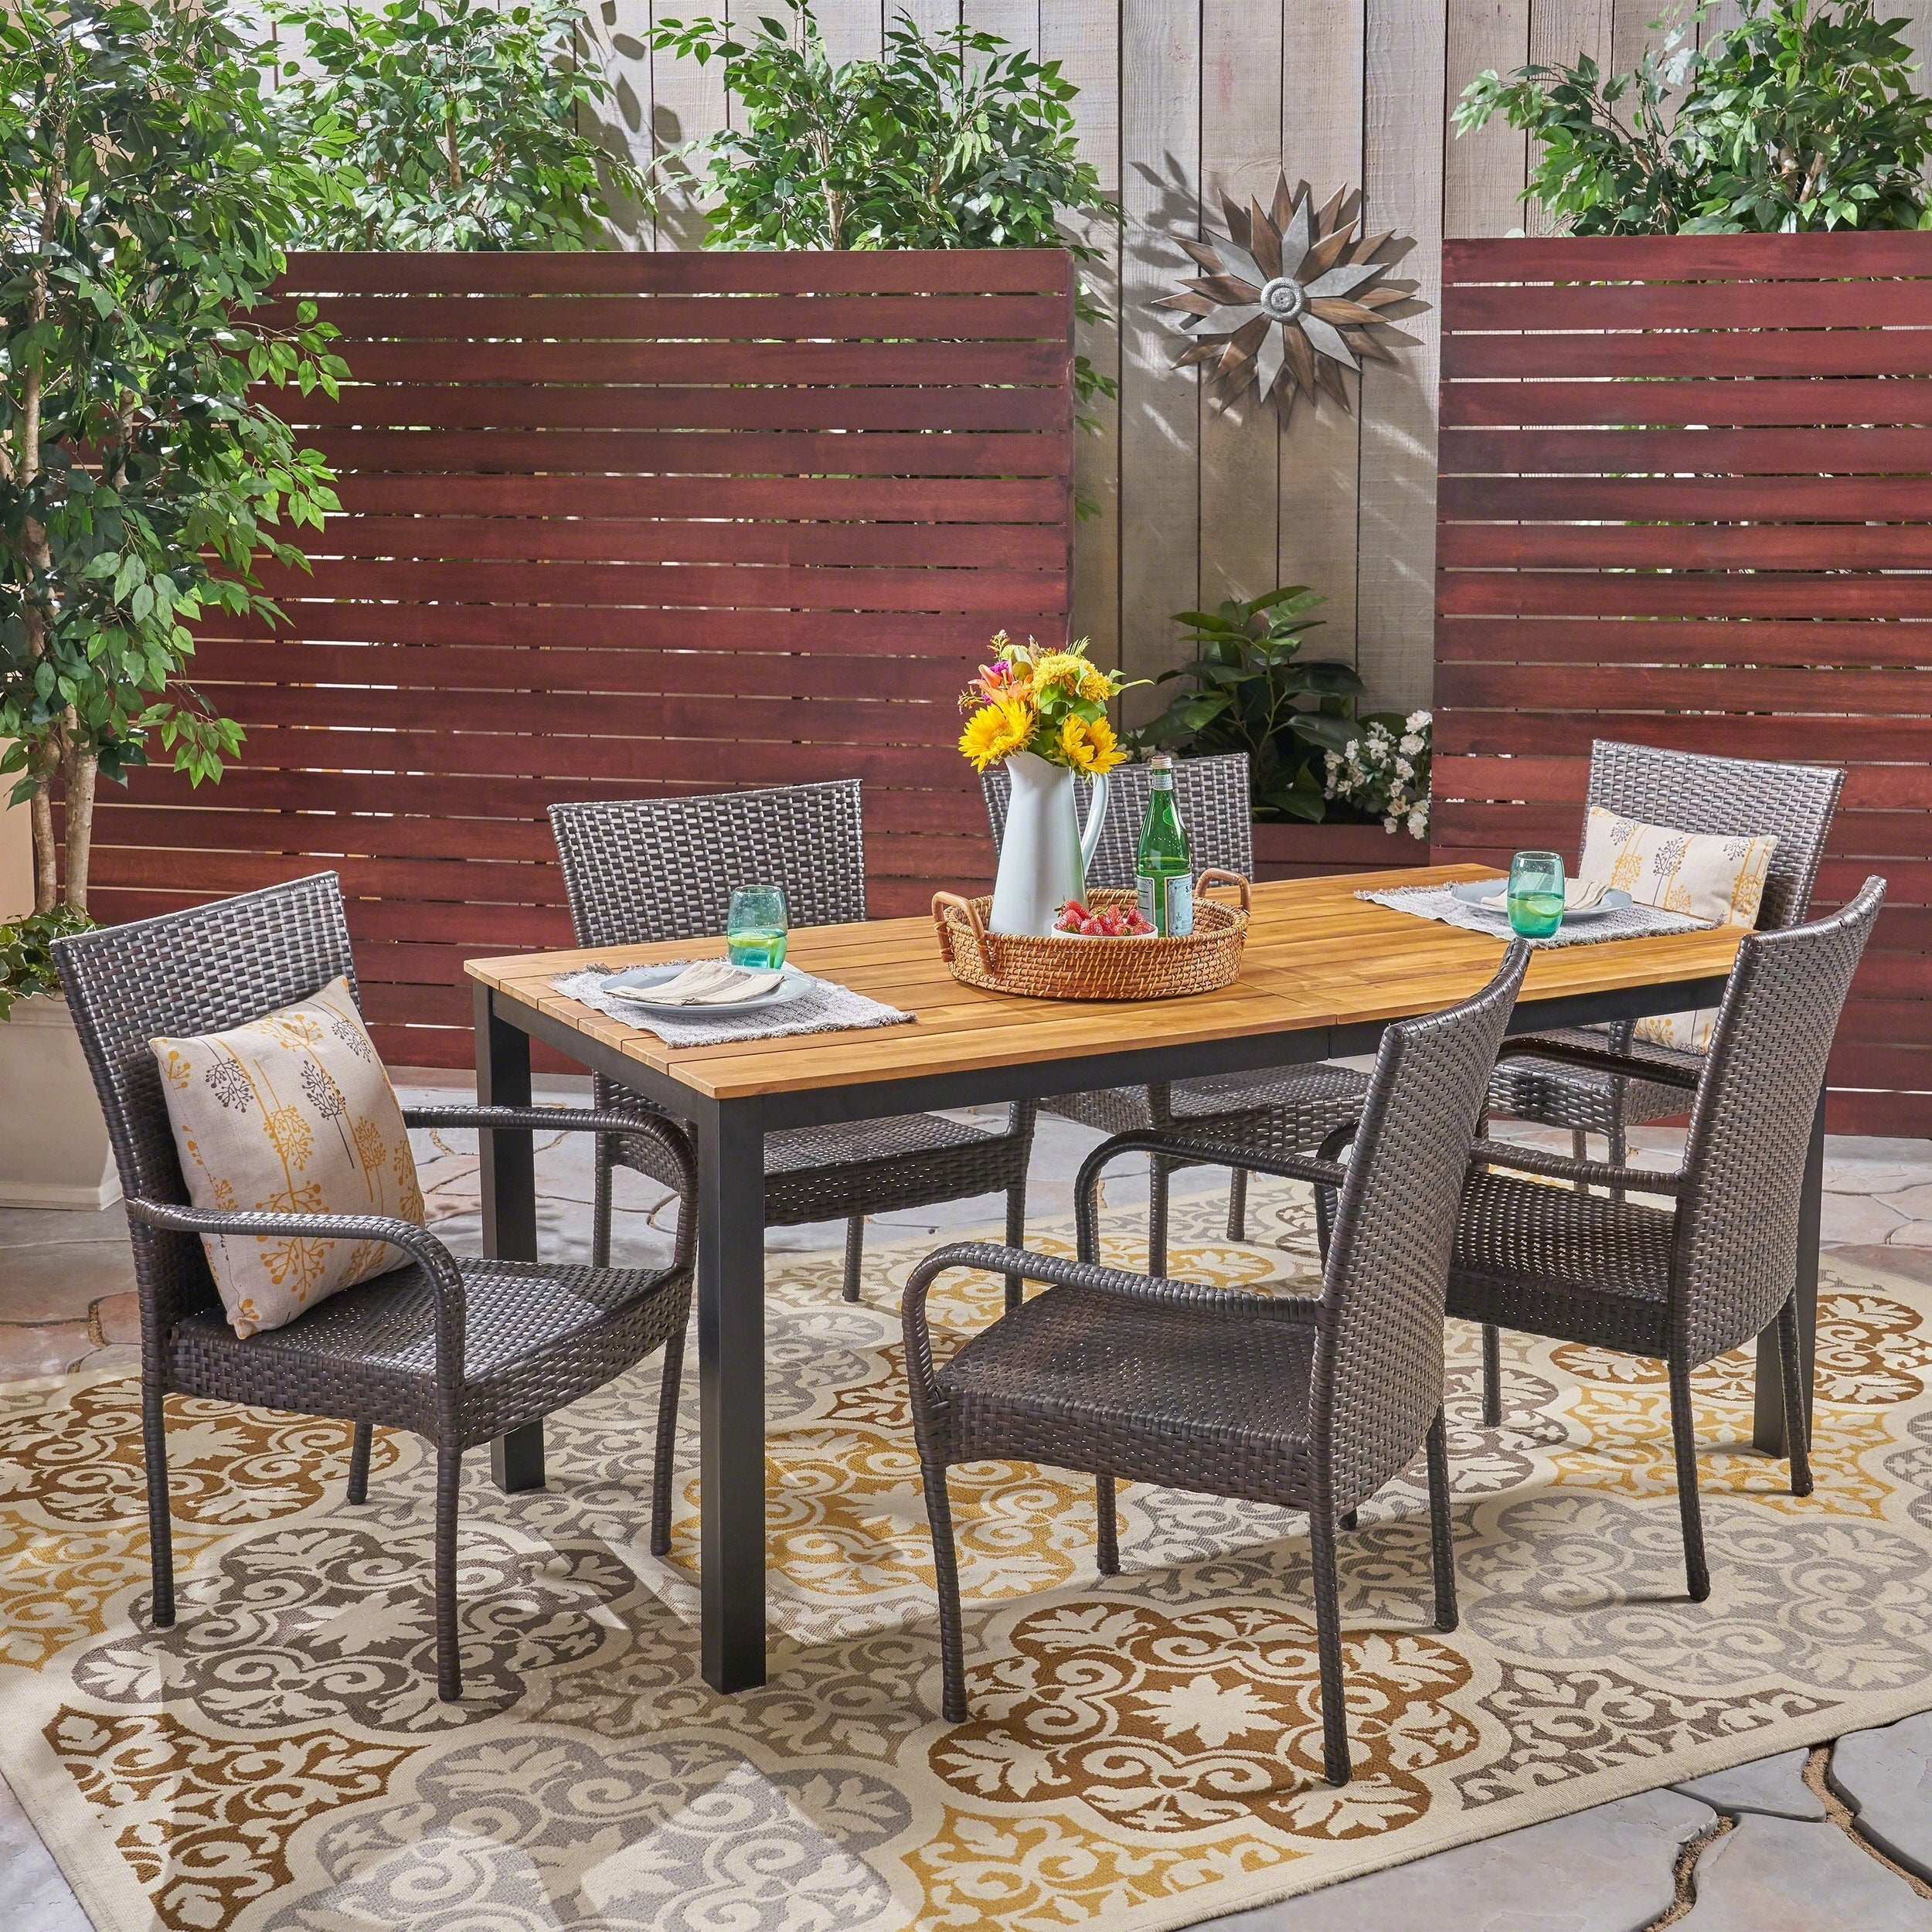 Shop coleman outdoor 7 piece acacia wood dining set with stacking wicker chairs by christopher knight home on sale free shipping today overstock